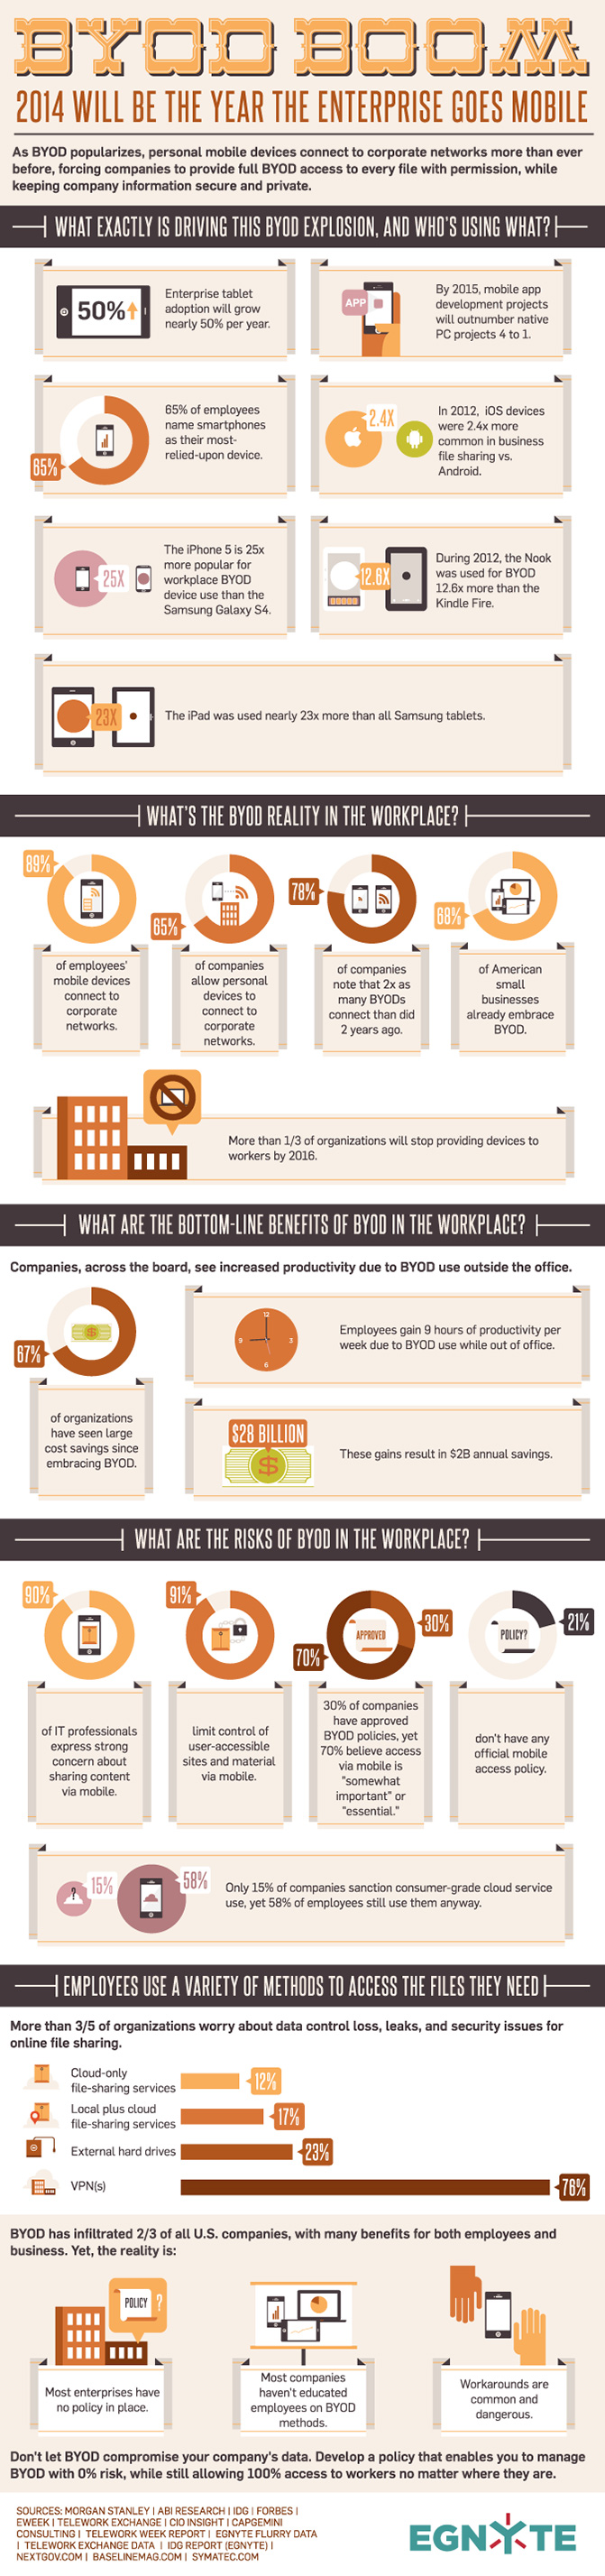 byod infographic Infographic: What does the BYOD trend actually mean for businesses?